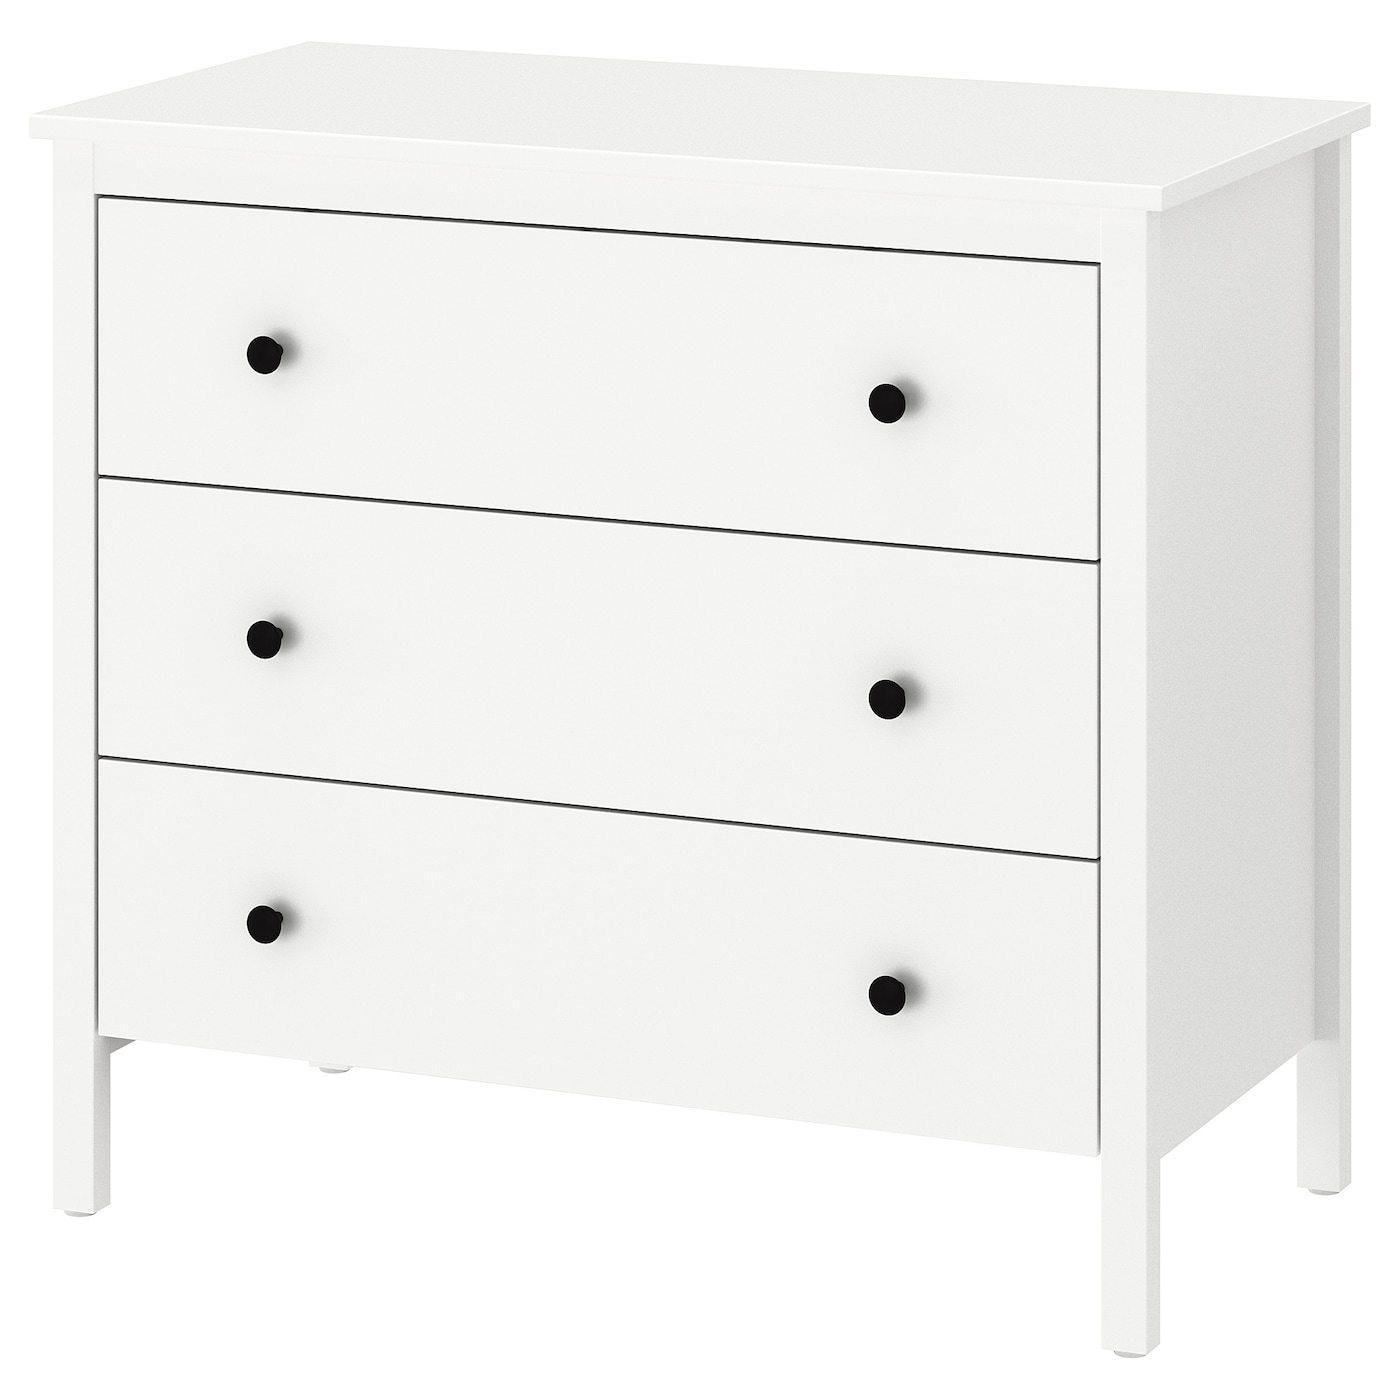 koppang commode 3 tiroirs blanc 90 x 83 cm ikea. Black Bedroom Furniture Sets. Home Design Ideas